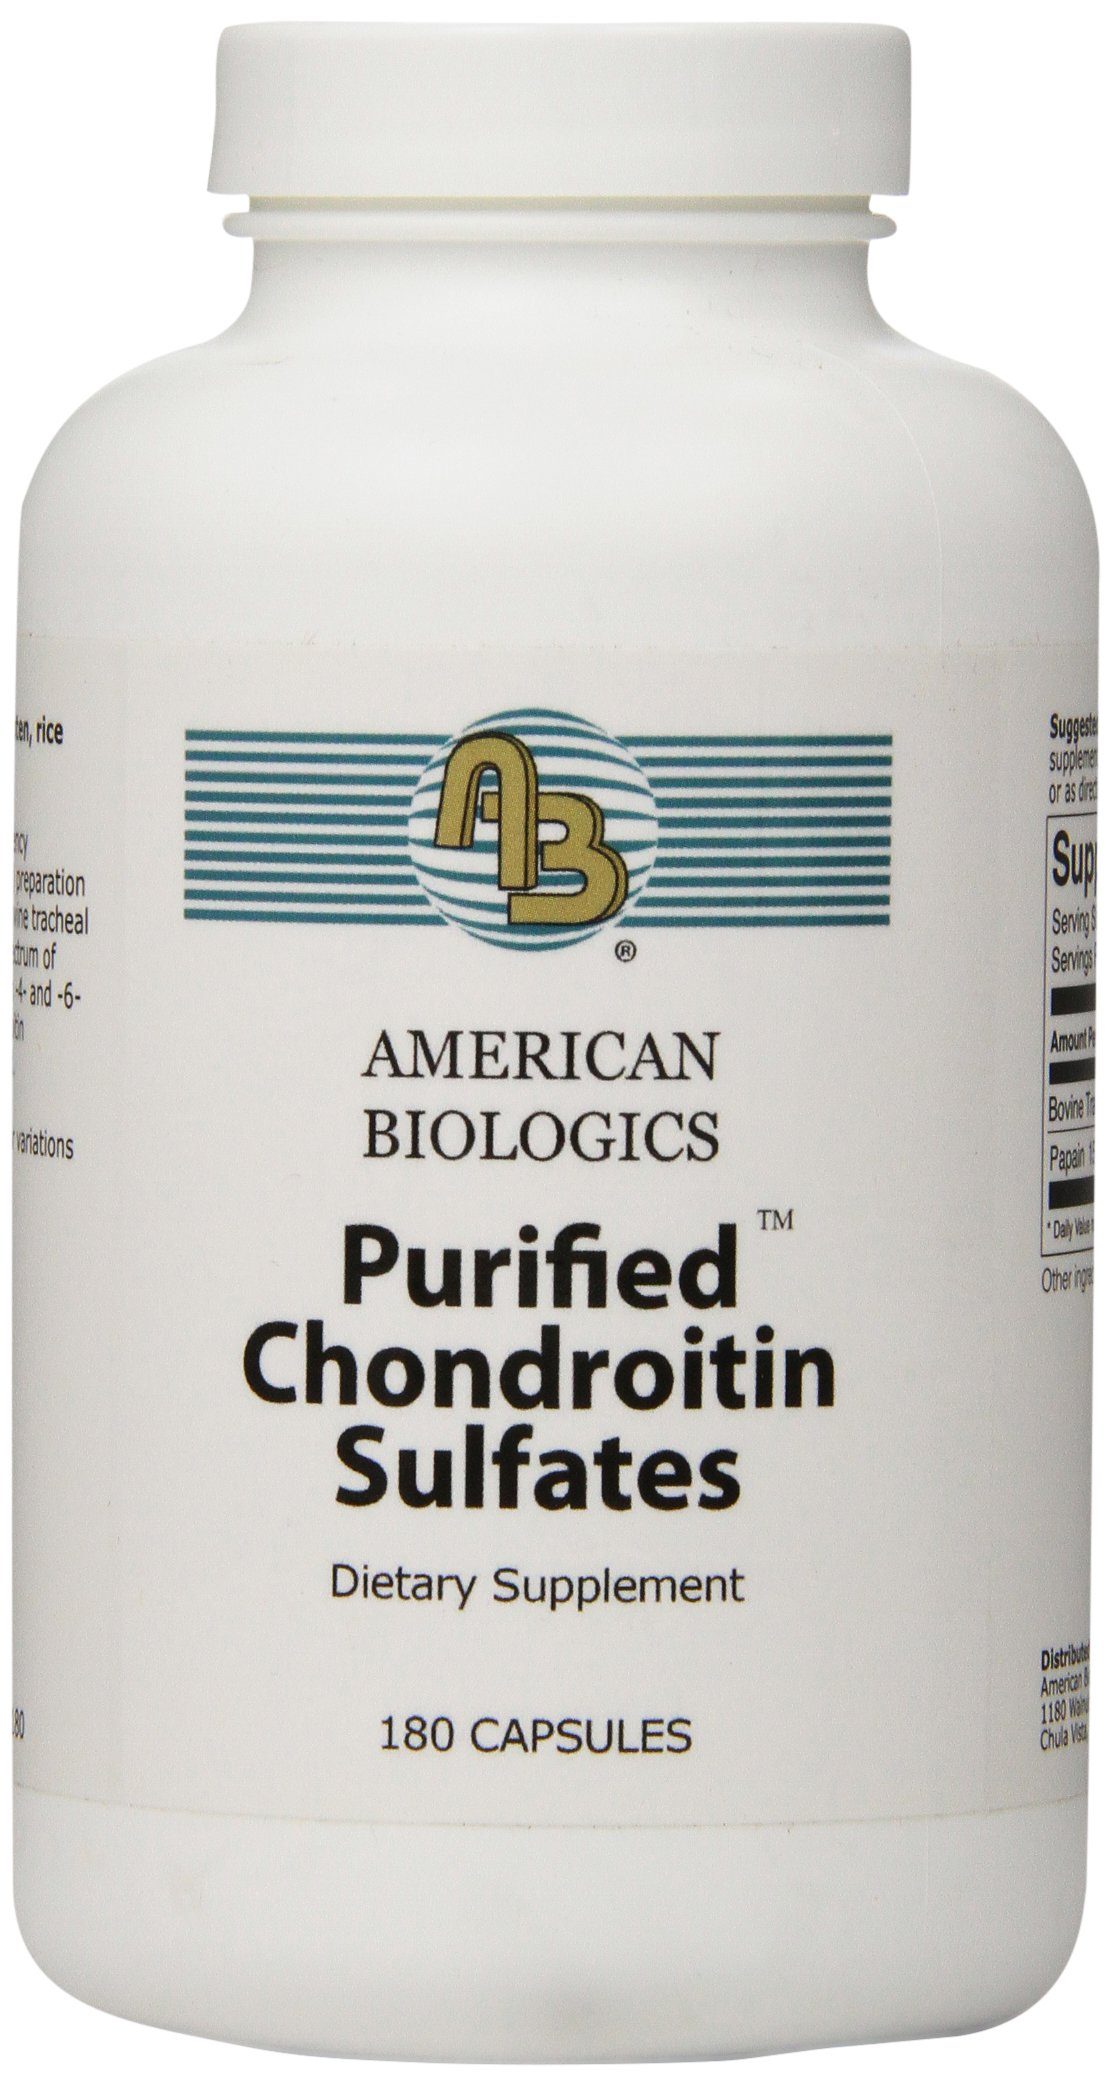 American Biologics Chondroitin Capsules, 180 Count